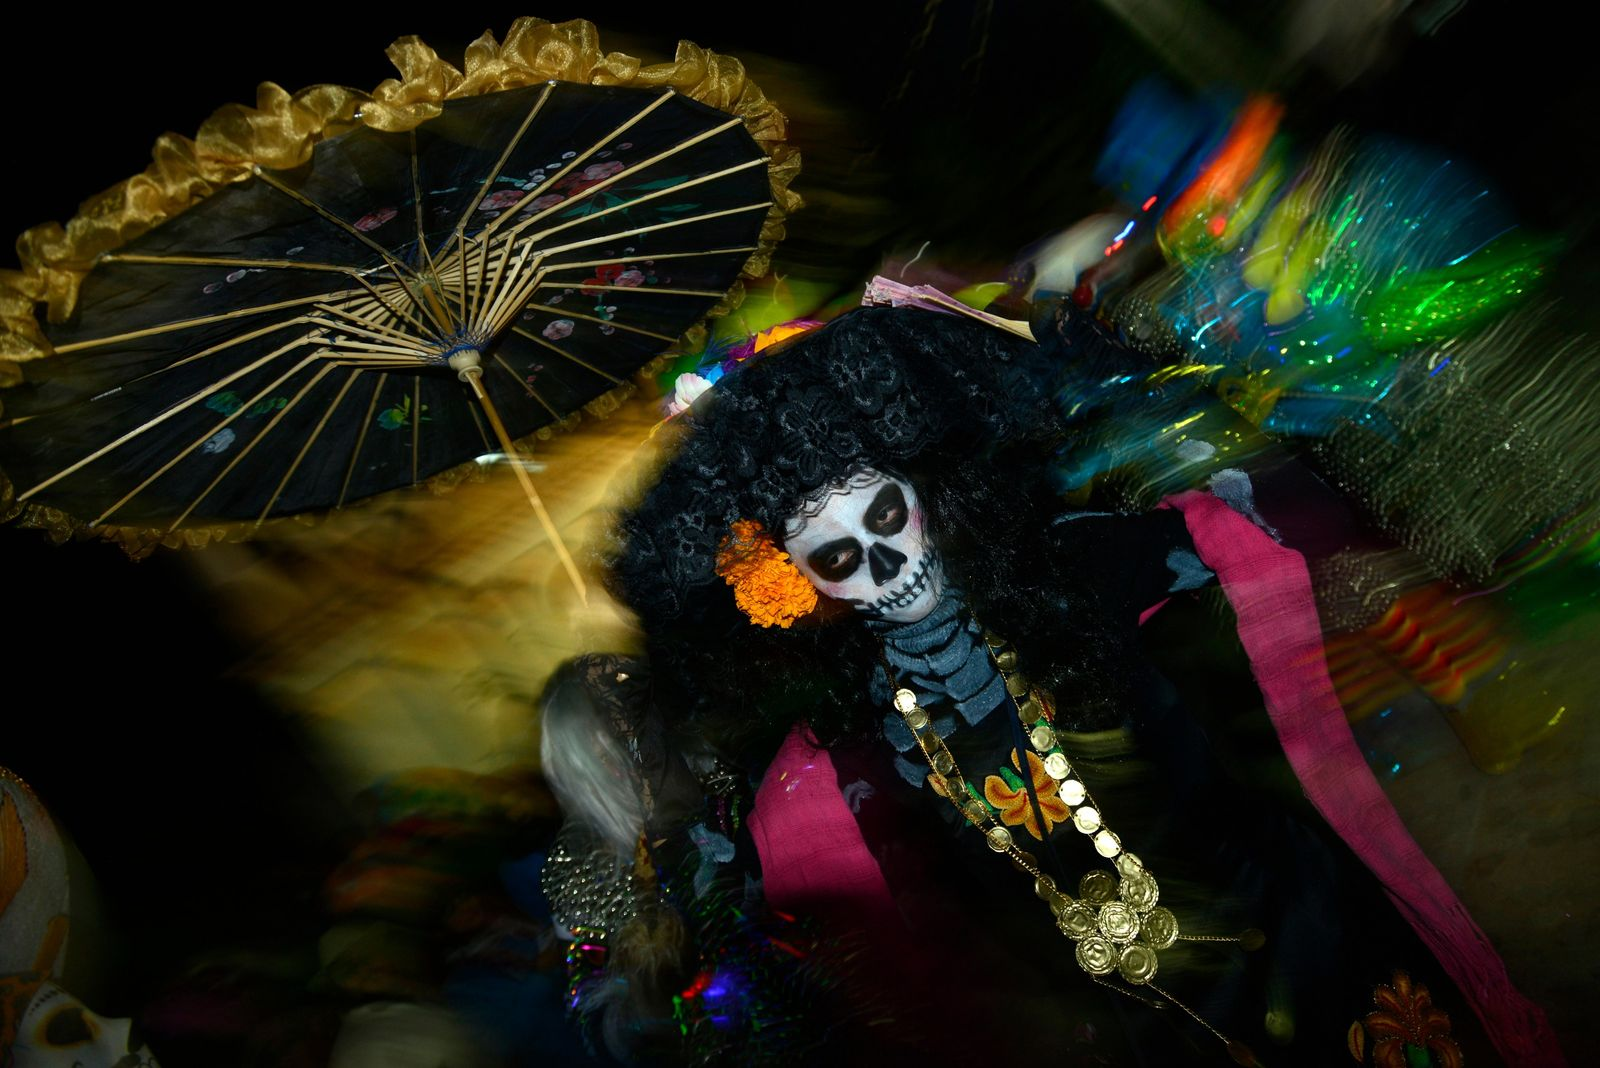 A Day of the Dead celebrant dressed as La Catrina Calavera during the festivities in Oaxaca.